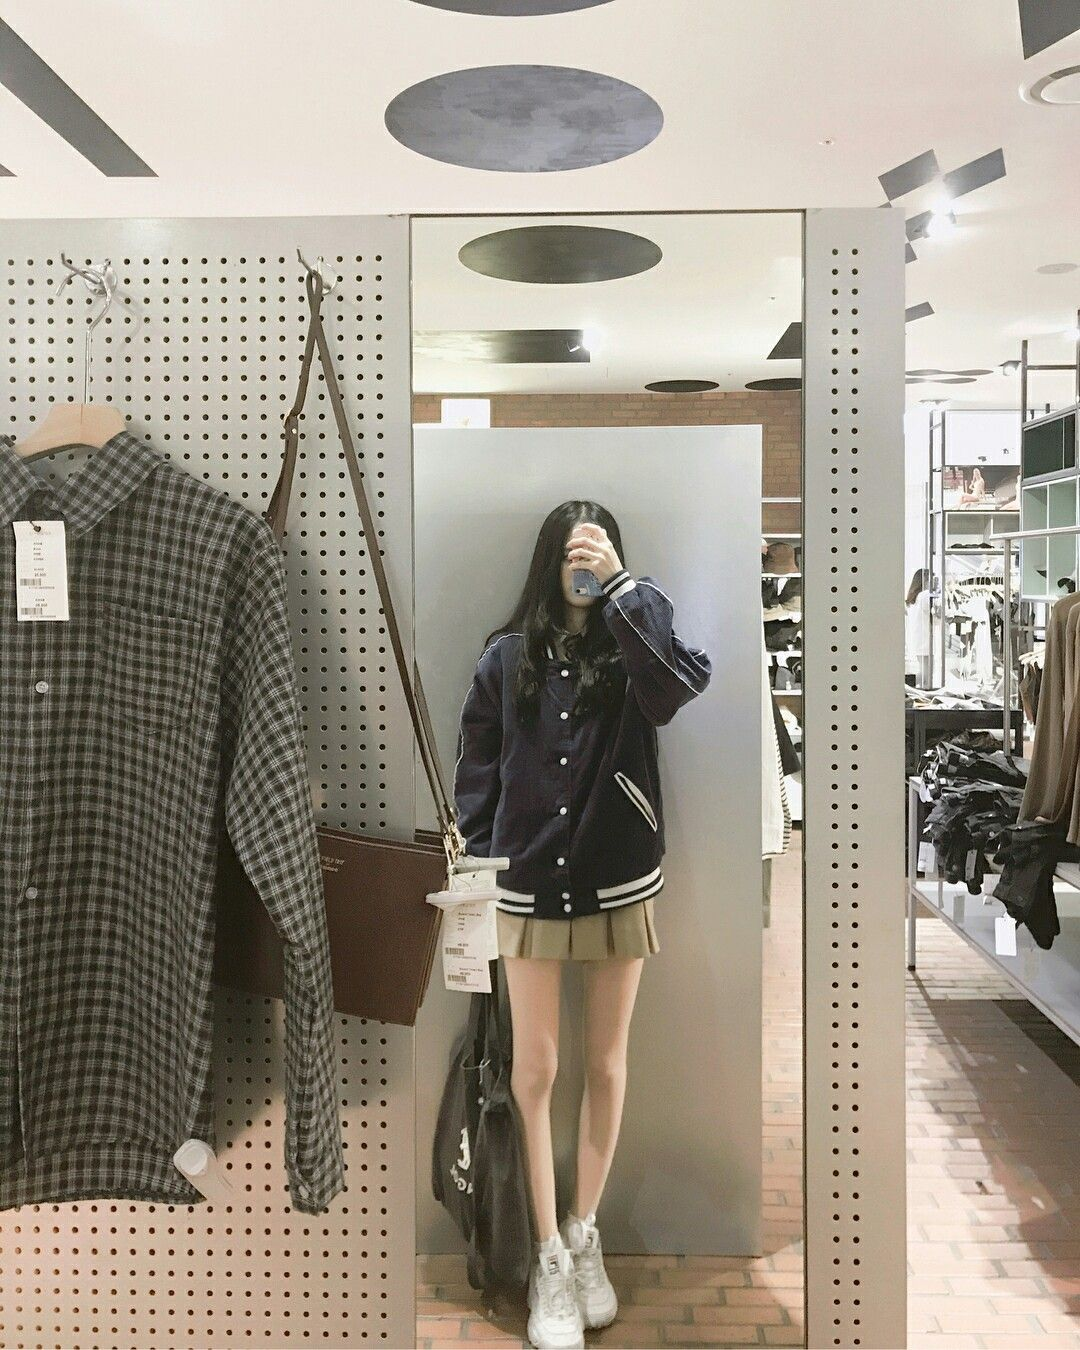 Pinterest Chanaemi Follow For More Ulzzang Pics: Check Out My Pinterest // Chanaemi For More ☁ Related Tags